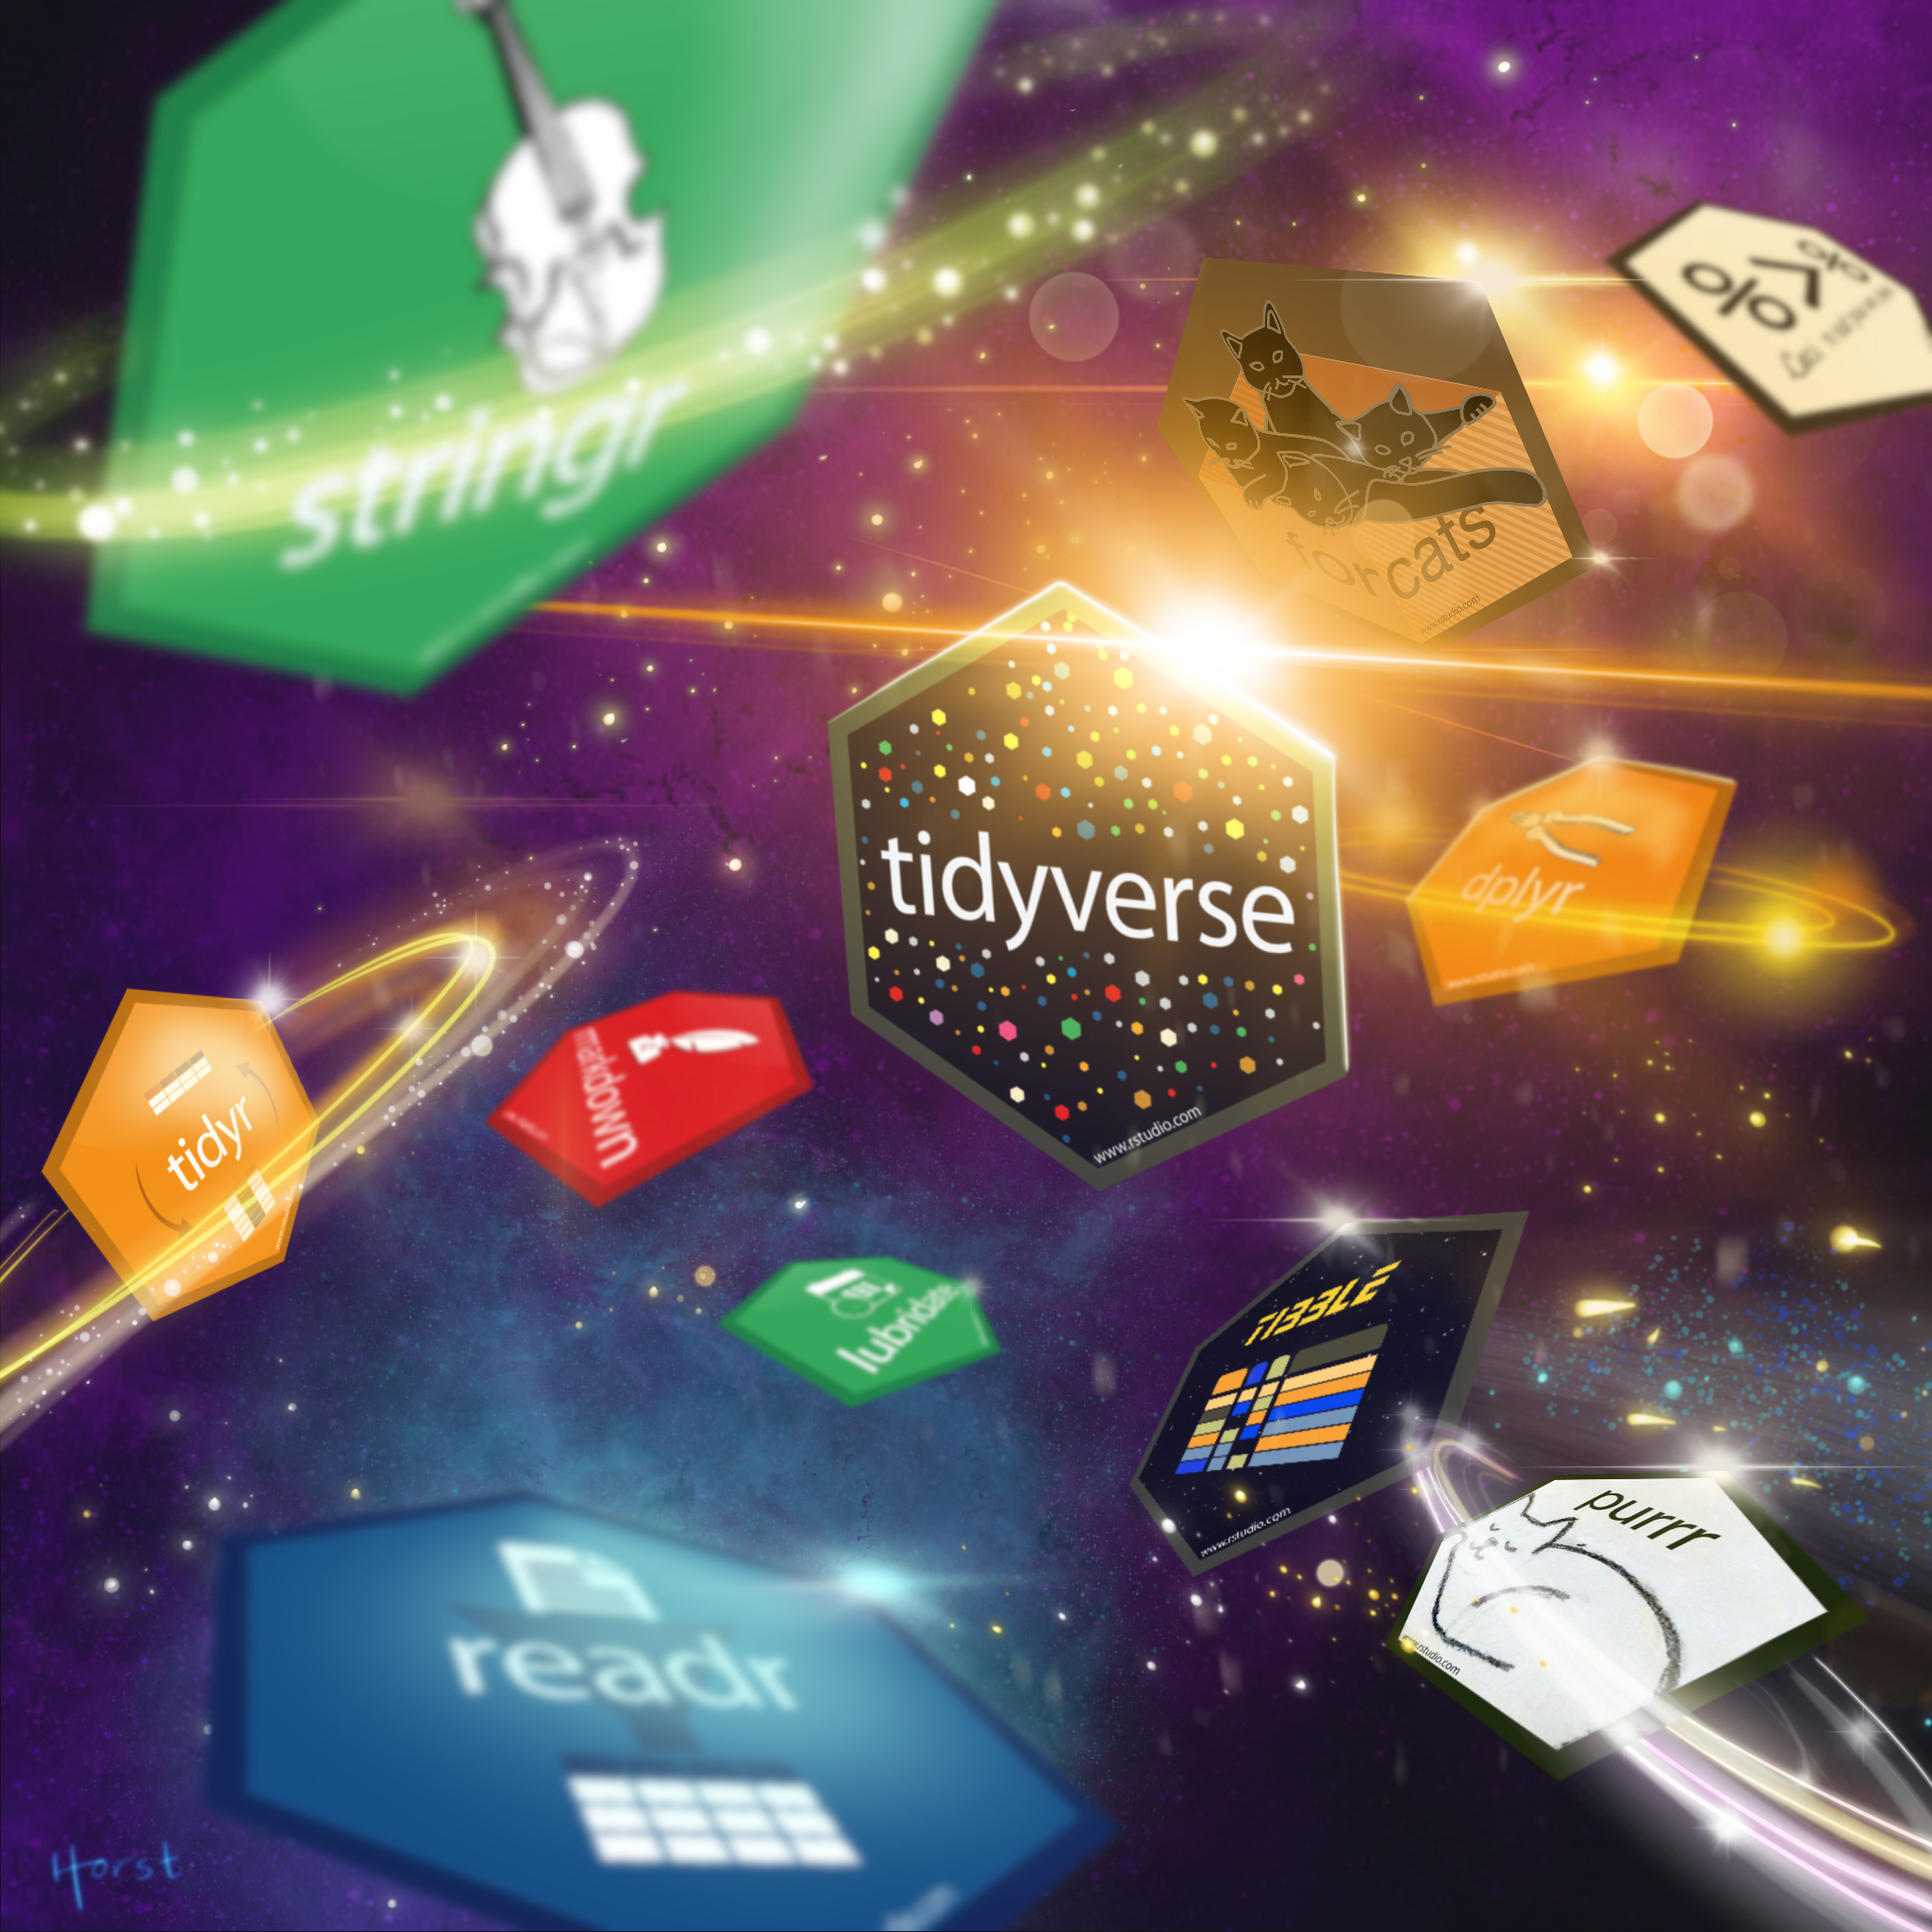 """""""Tidyverse Celestial"""" by Allison Horst. """"tidyverse"""" hex sticker in space surrounded by other tidyverse package hex logos."""